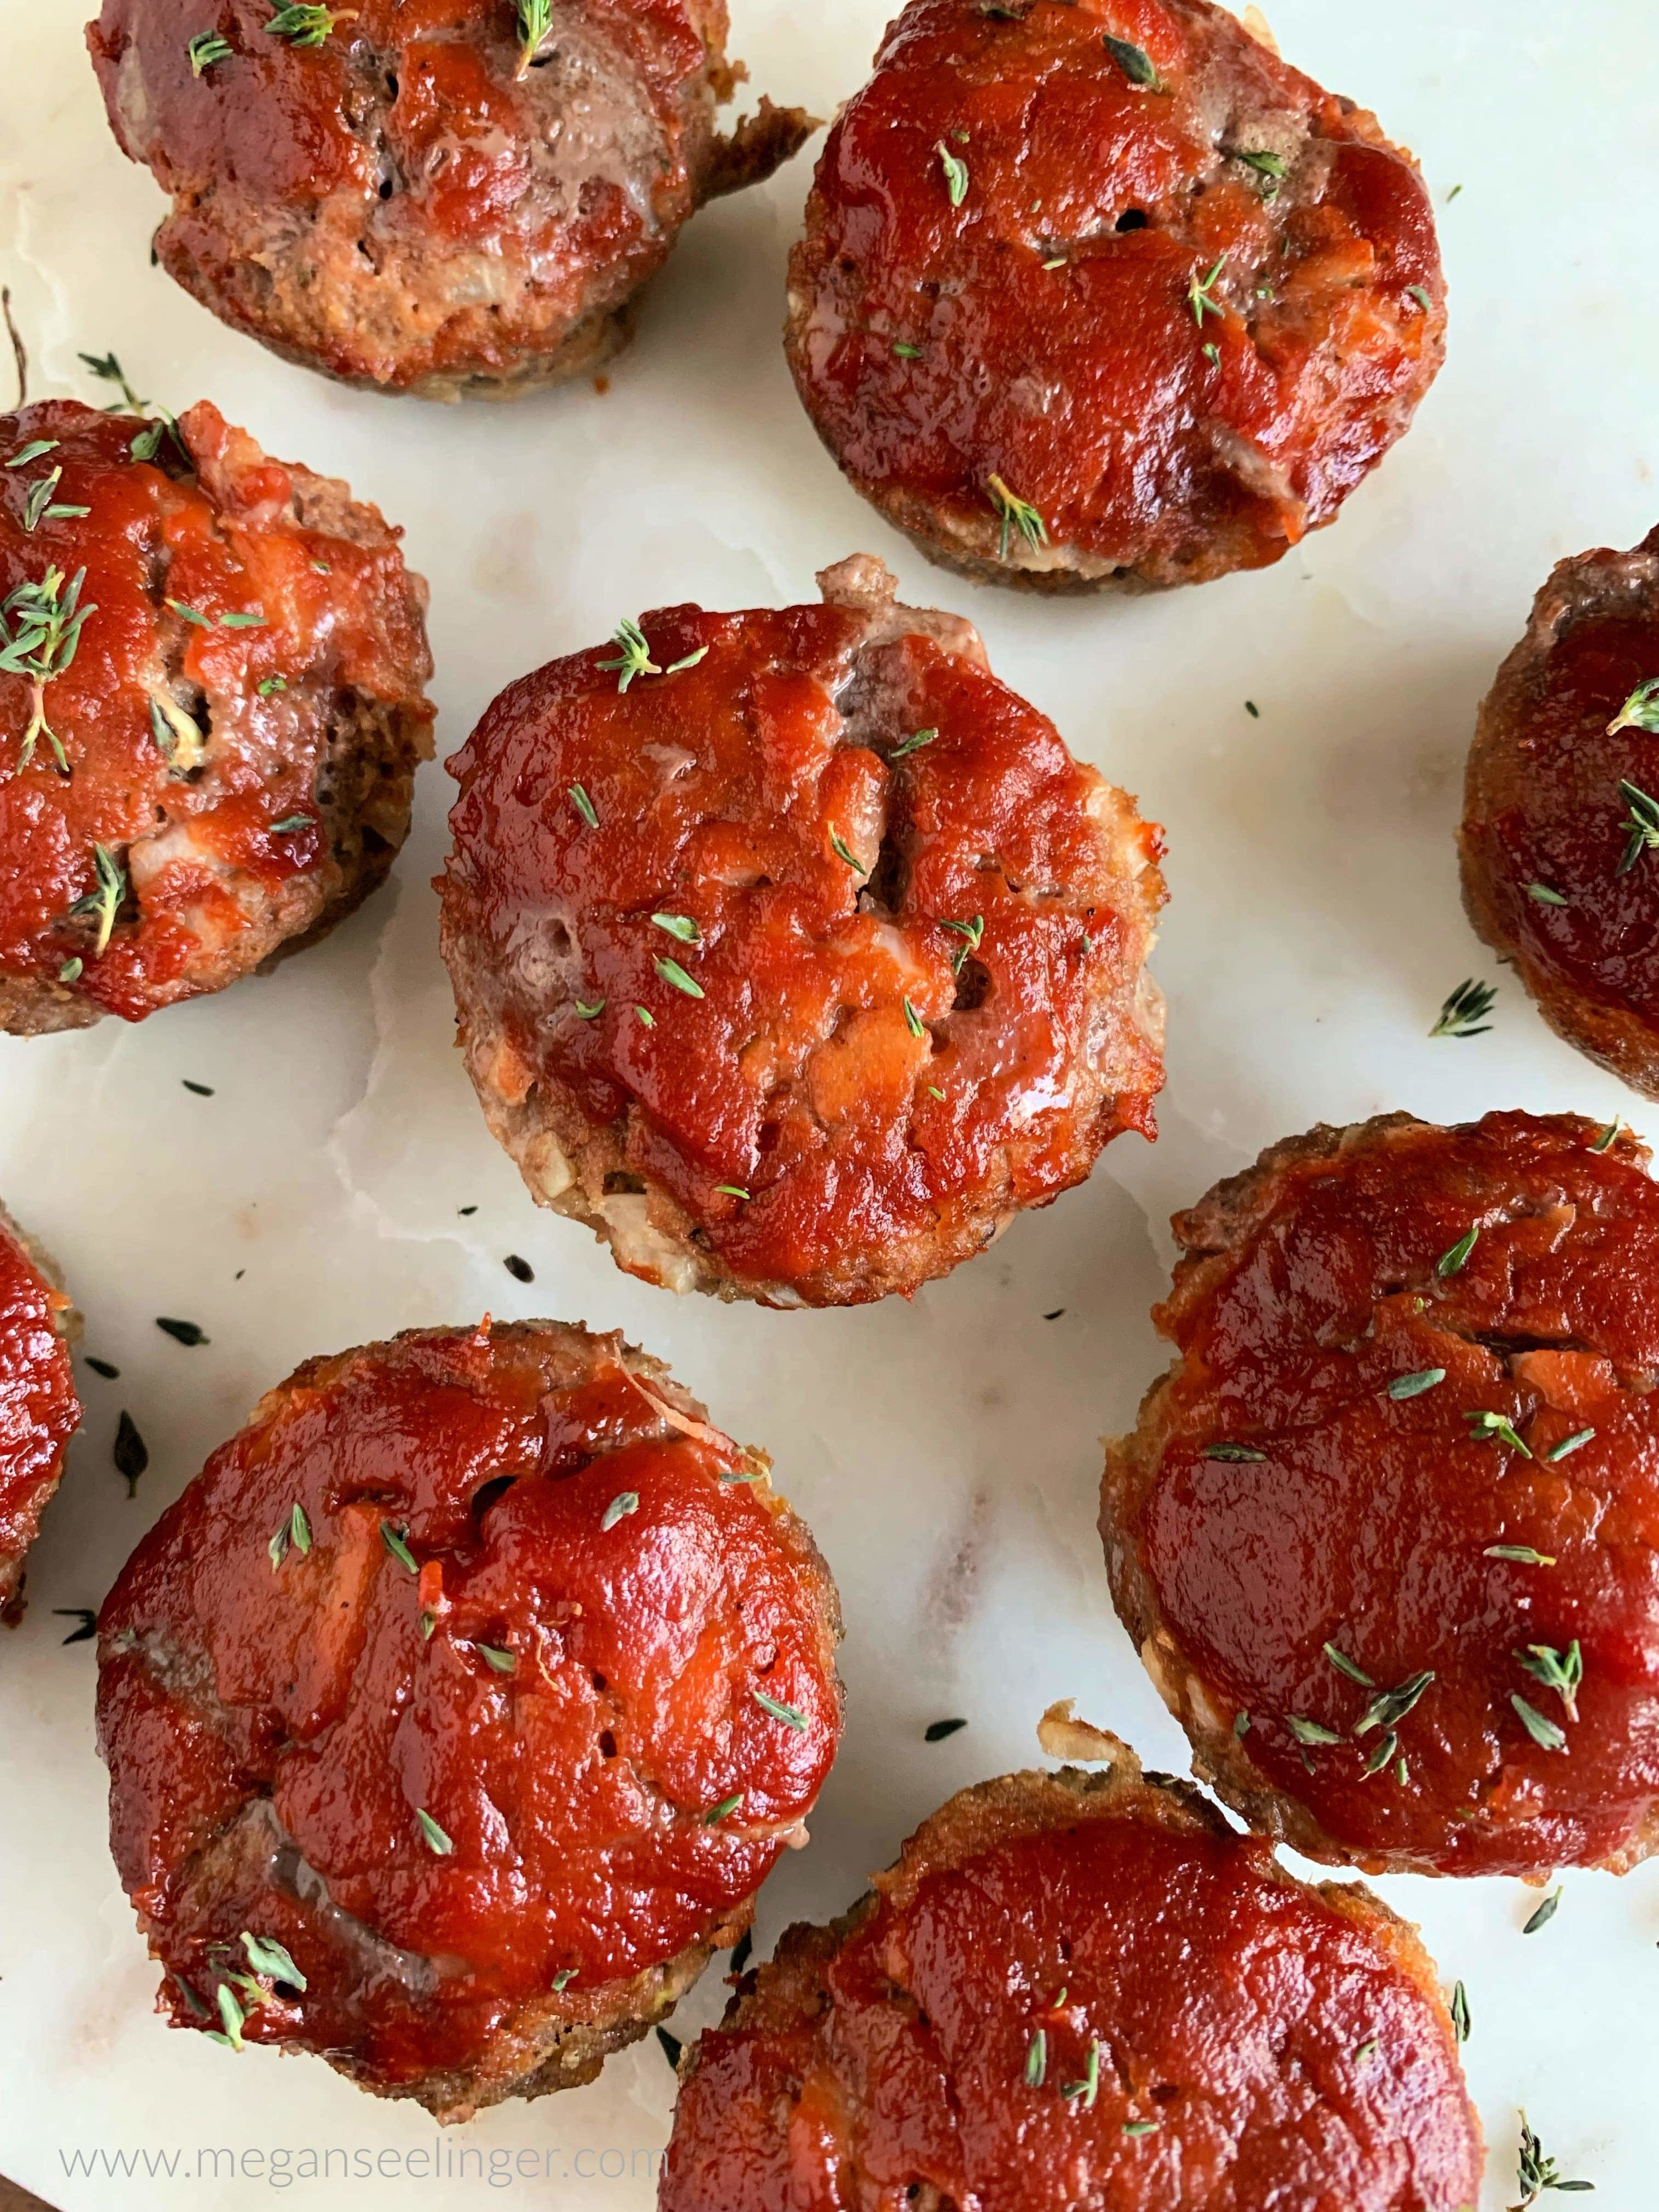 The Best Keto Meatloaf Minis With Low Carb Ketchup Megan Seelinger Coaching